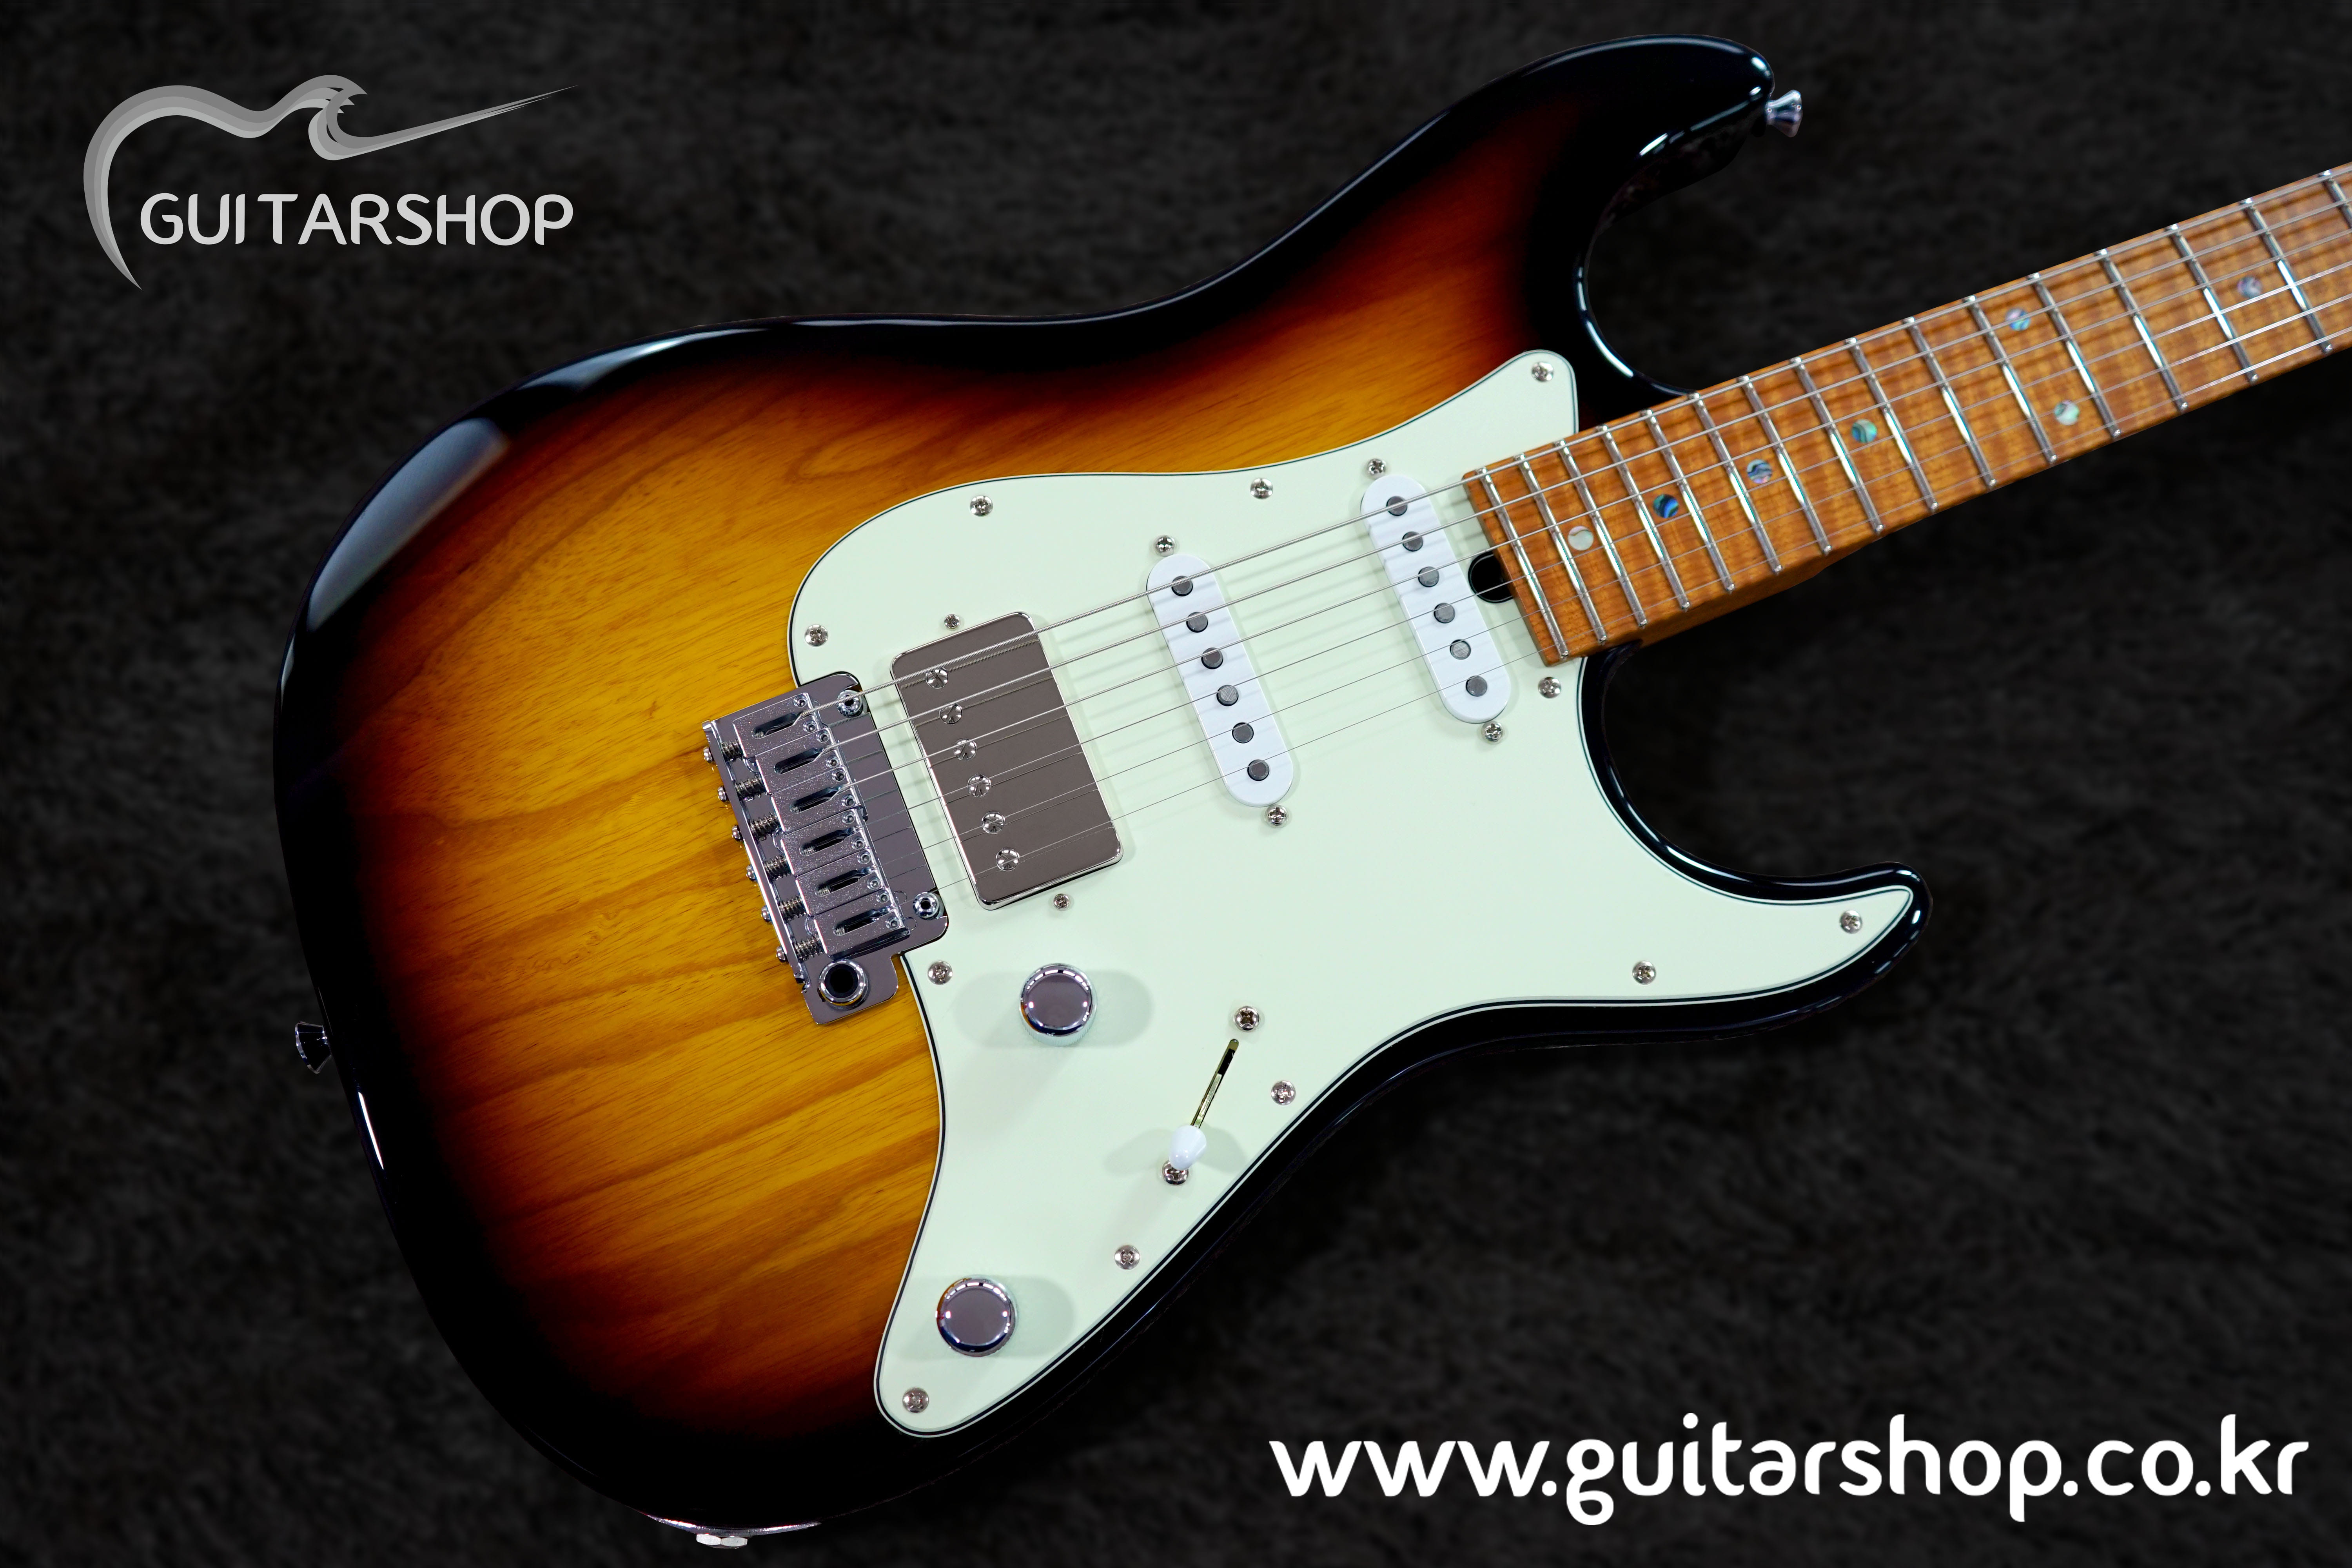 "T's GUITAR DST-Classic22 ""Roasted Flame Maple Neck"" (59 Burst)"